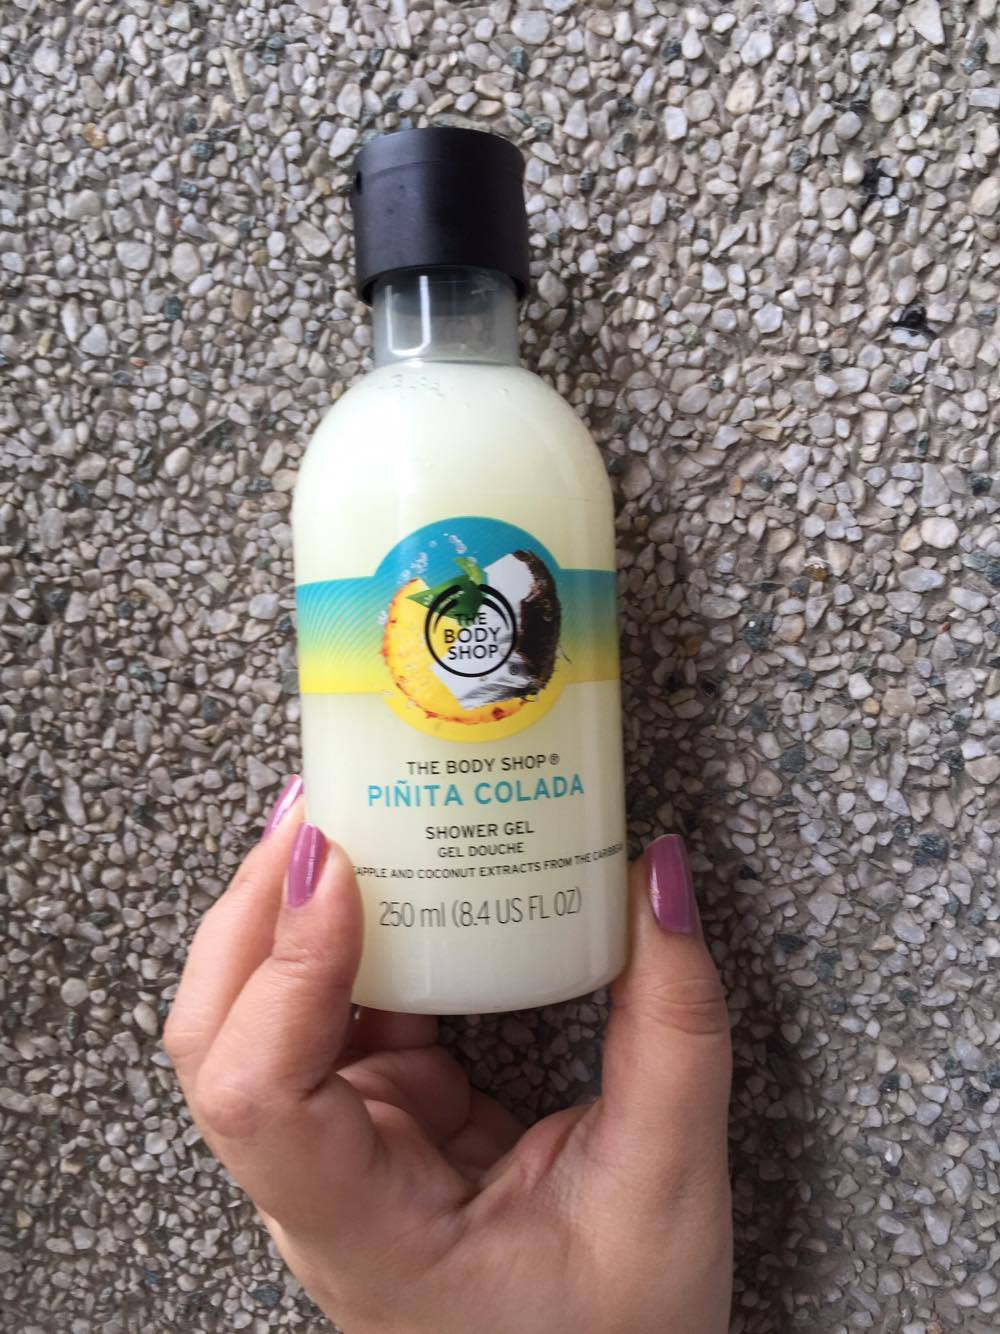 The Body Shop Pinita Colada Shower Gel review